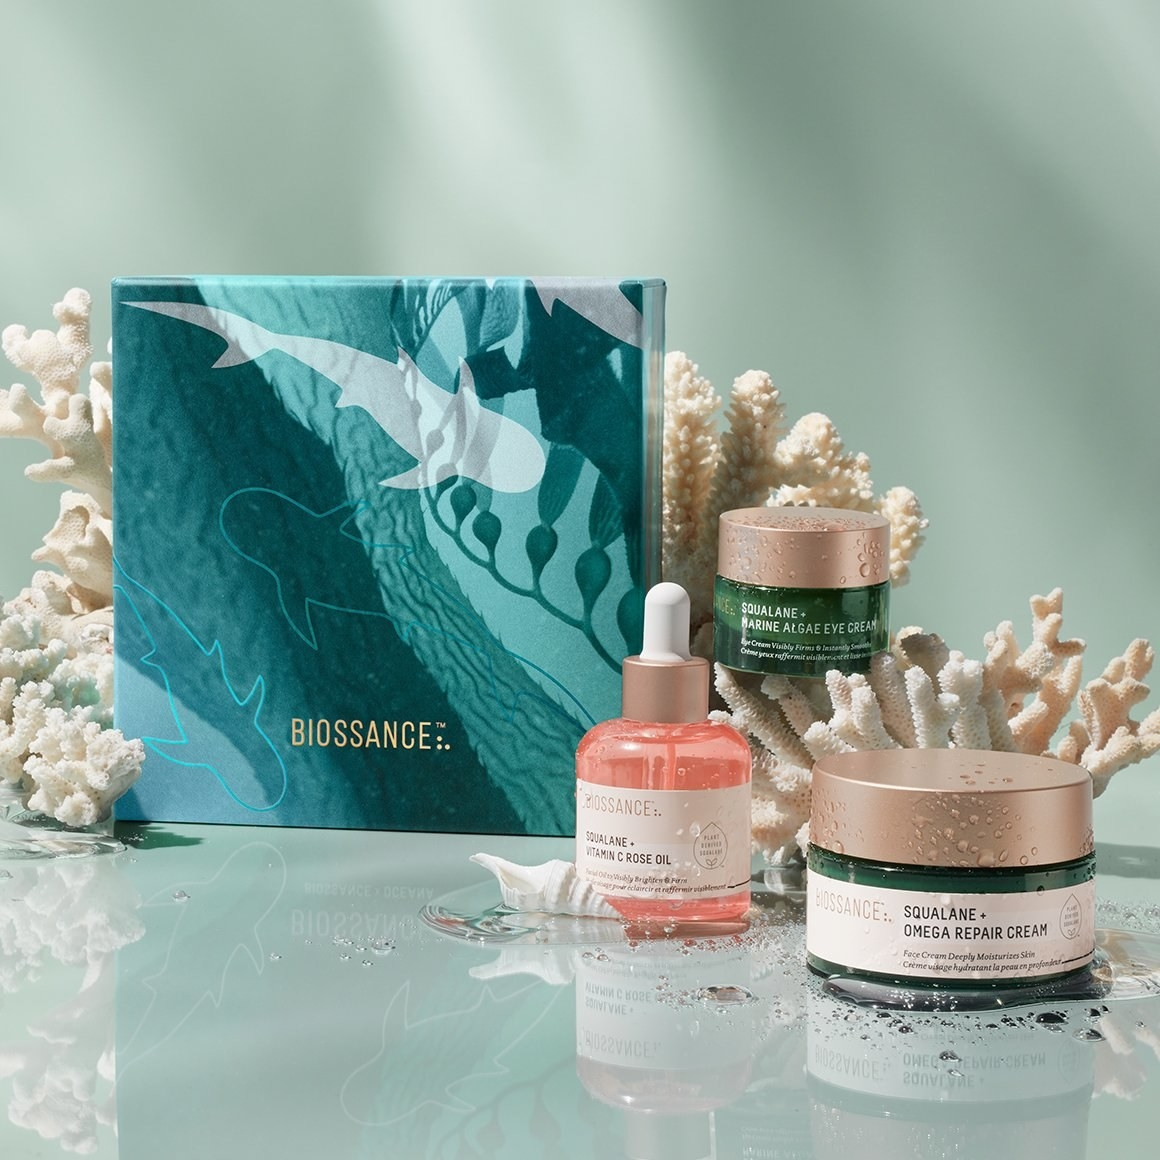 The gift set with the three skincare goods